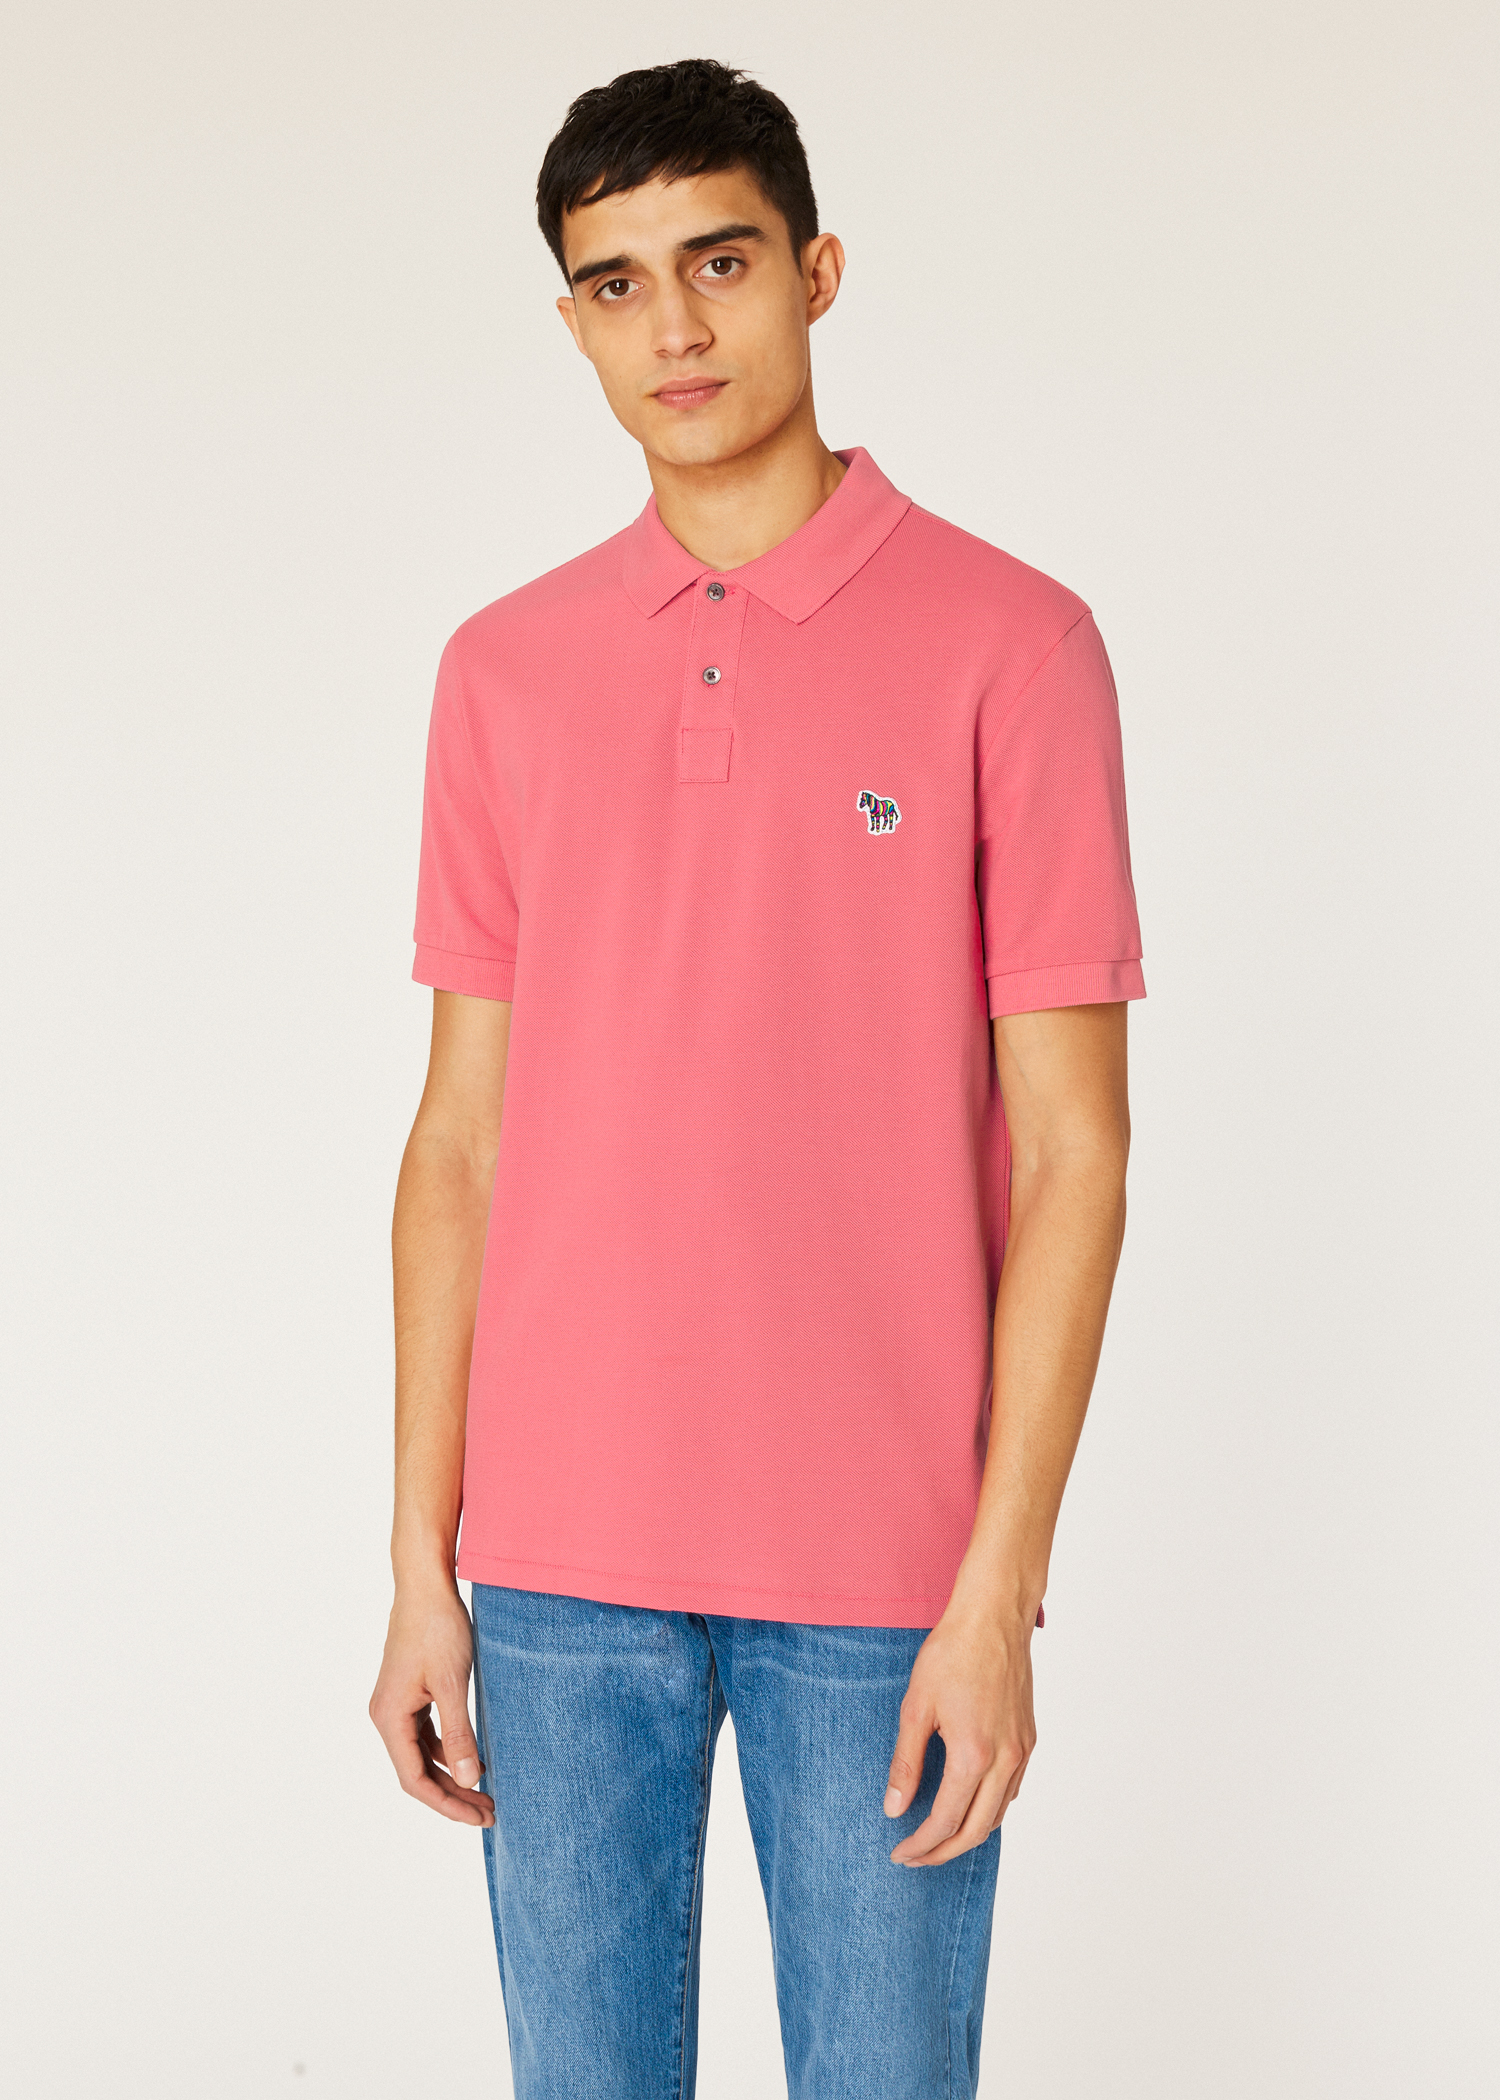 189c8ac684b Model front close up mens pink organic cotton piqué zebra logo polo shirt  paul jpg 1500x2100